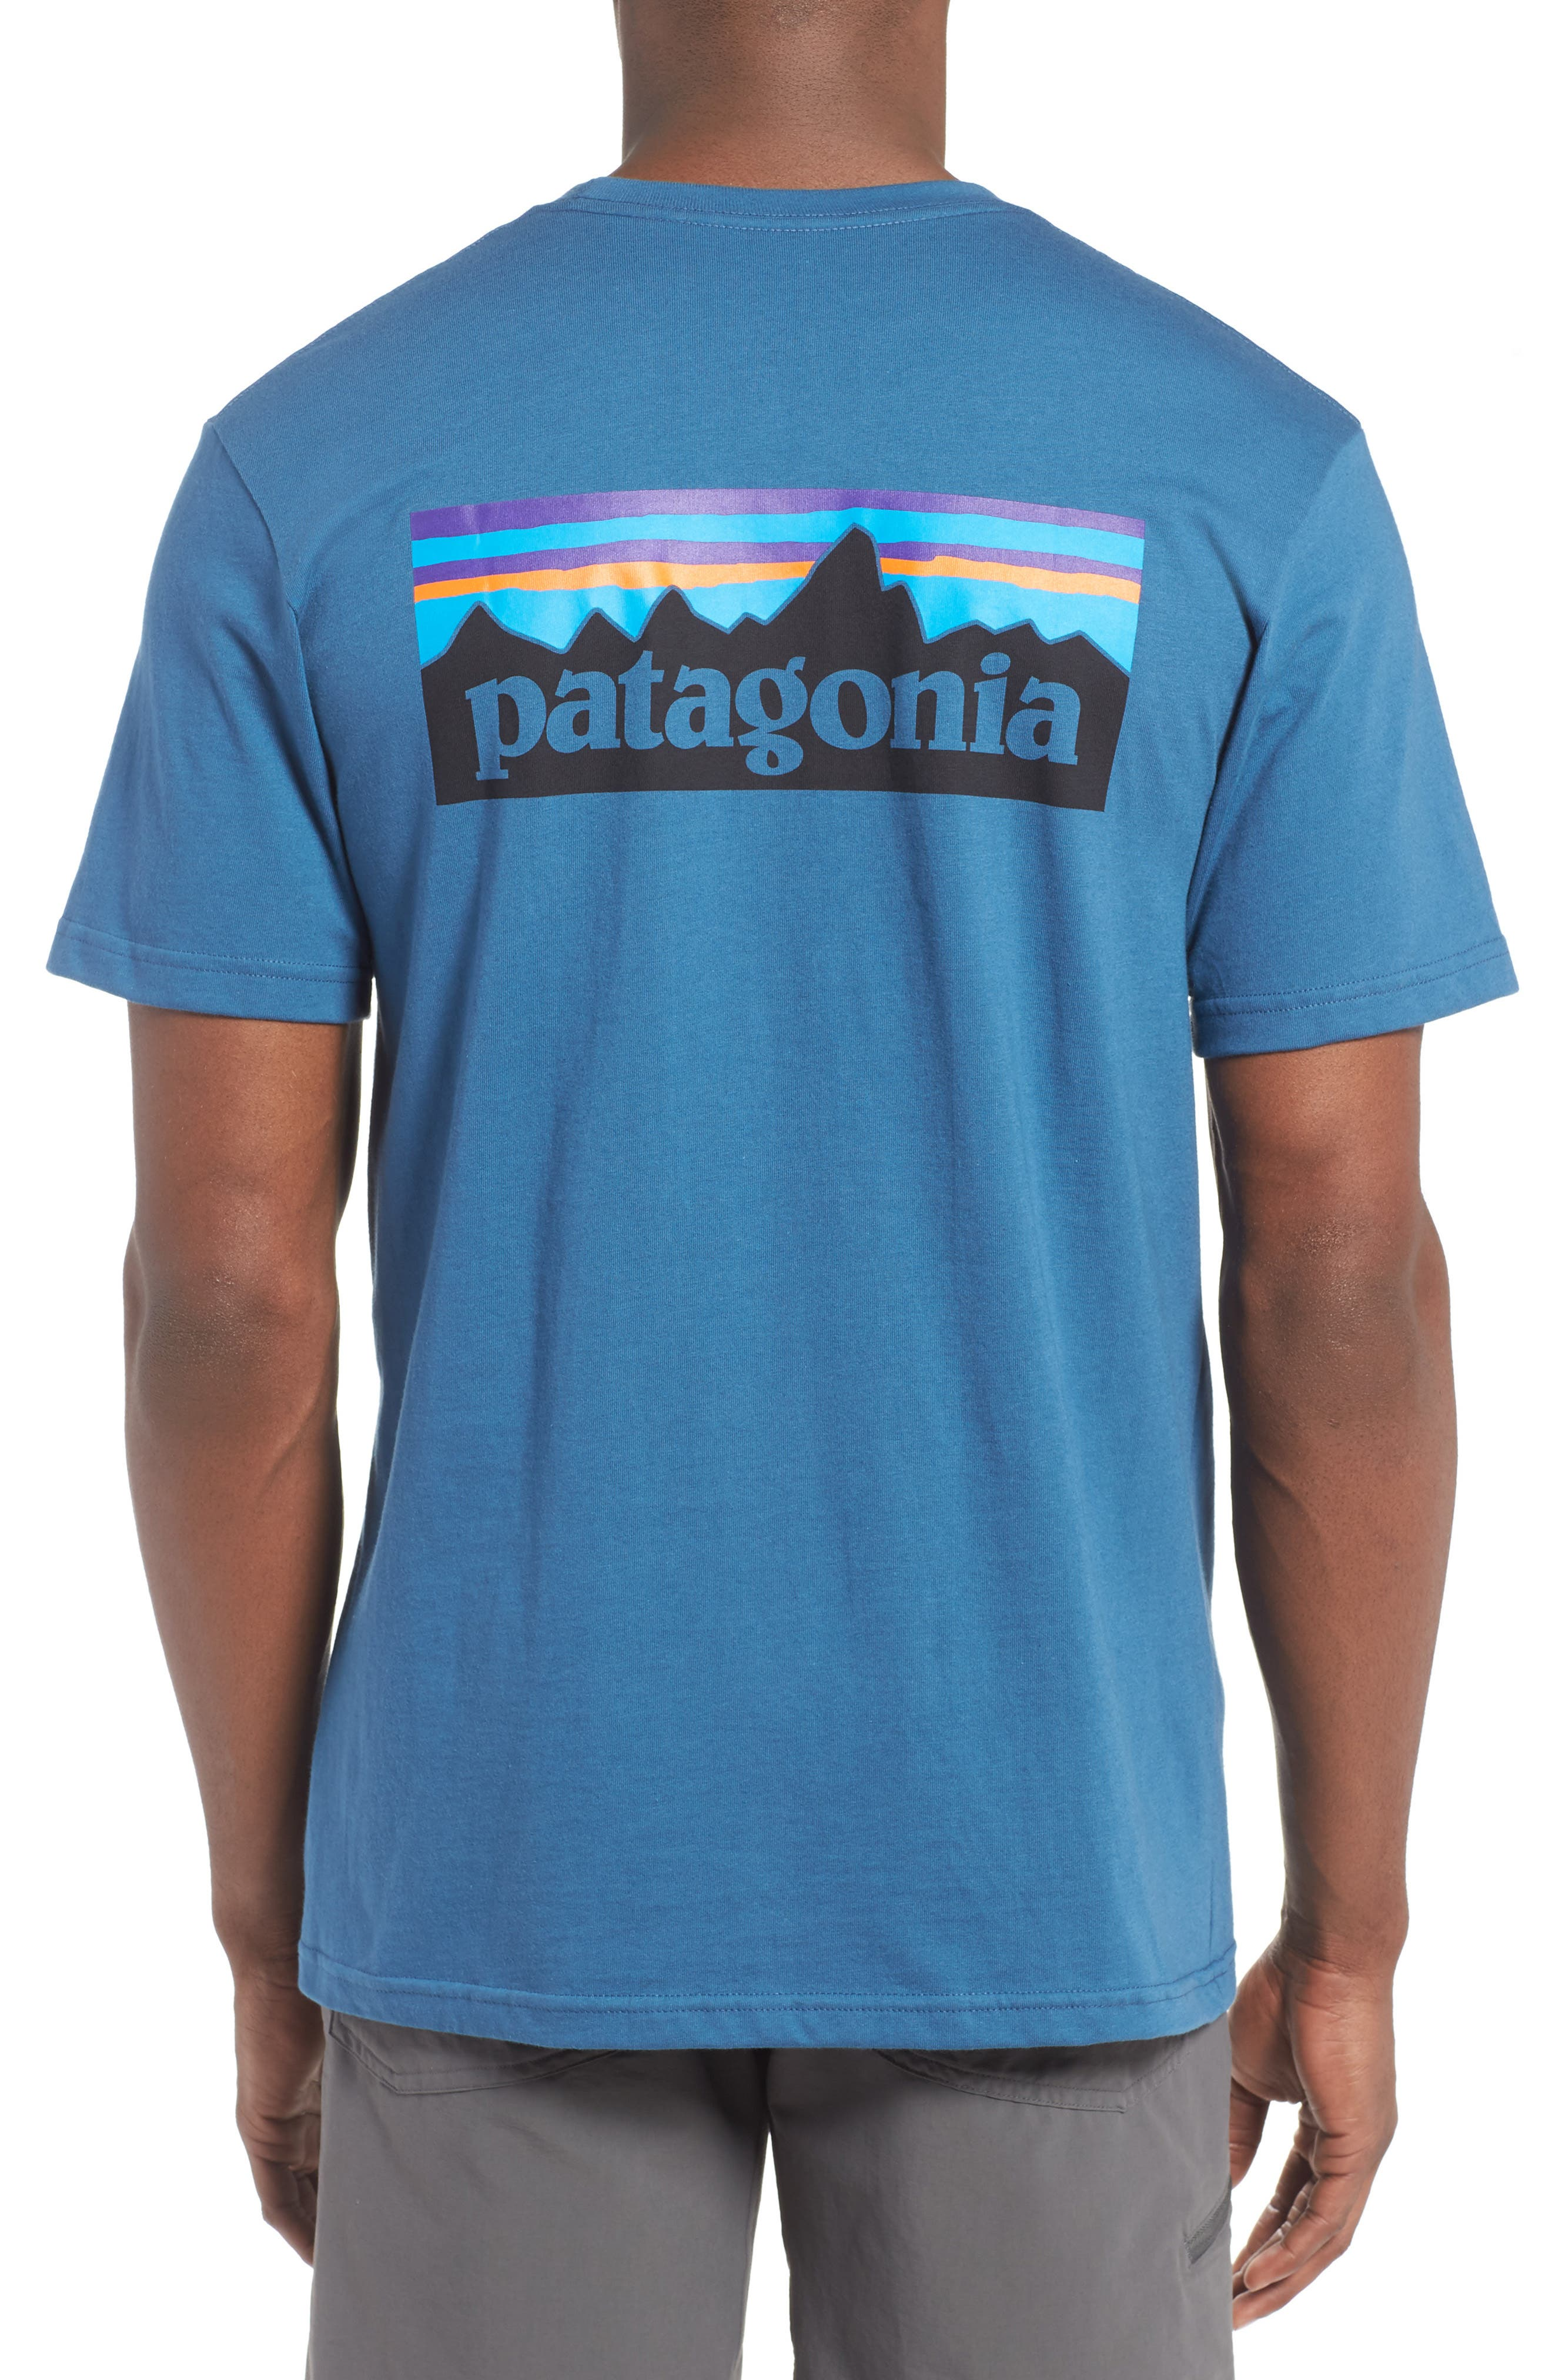 Alternate Image 1 Selected - Patagonia 'P-6 Logo' Organic Cotton T-Shirt